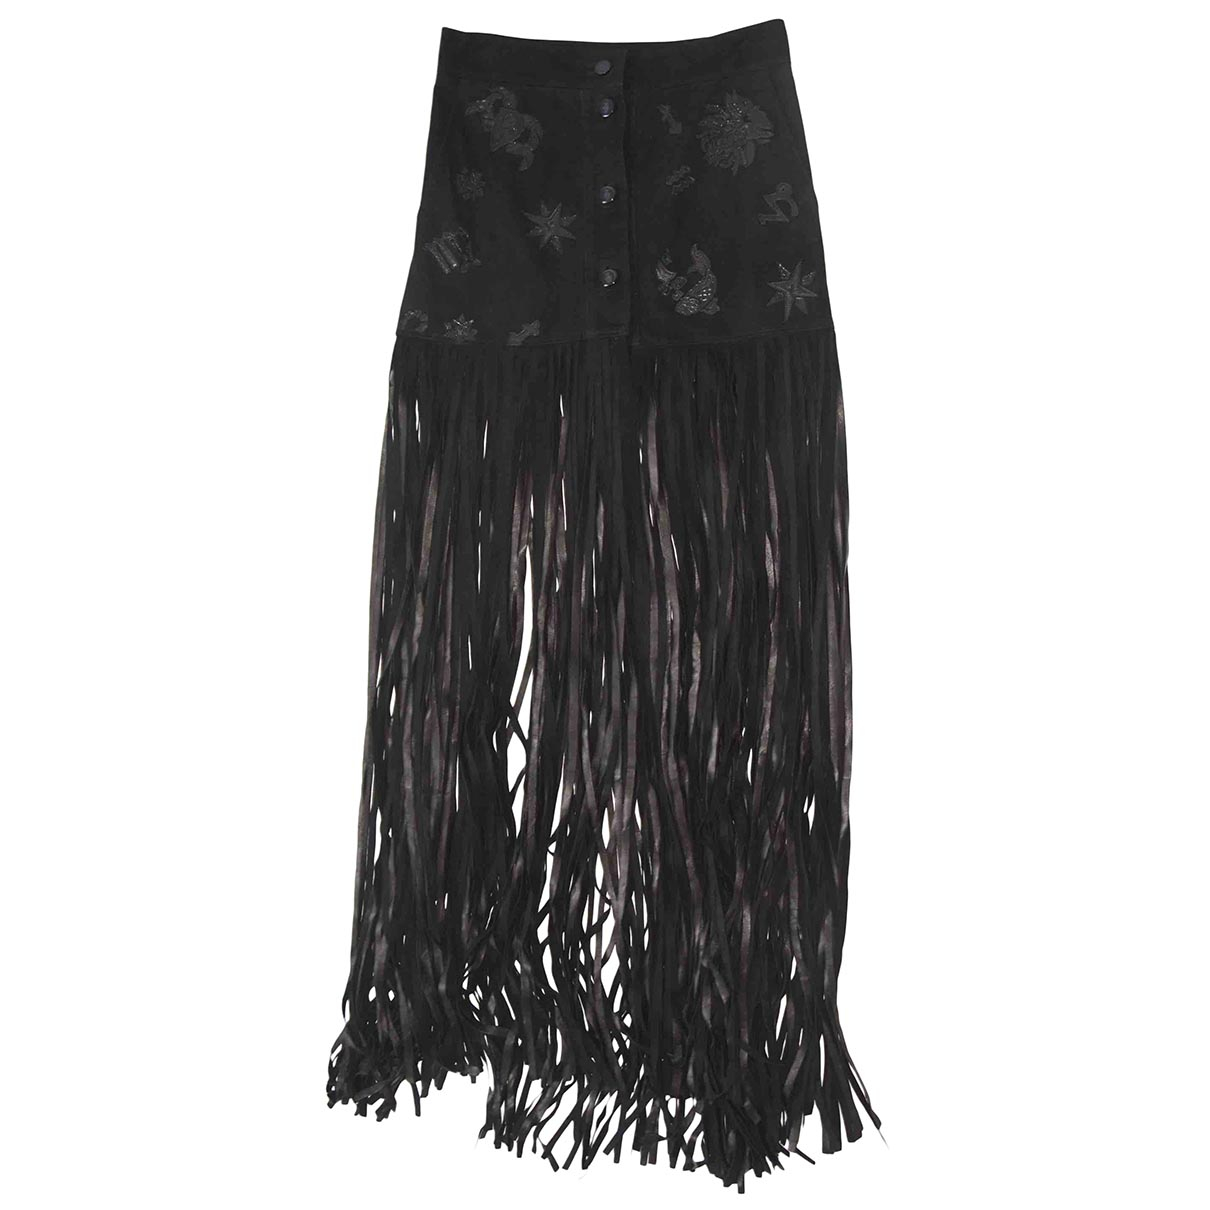 Emilio Pucci \N Black Suede skirt for Women 40 IT